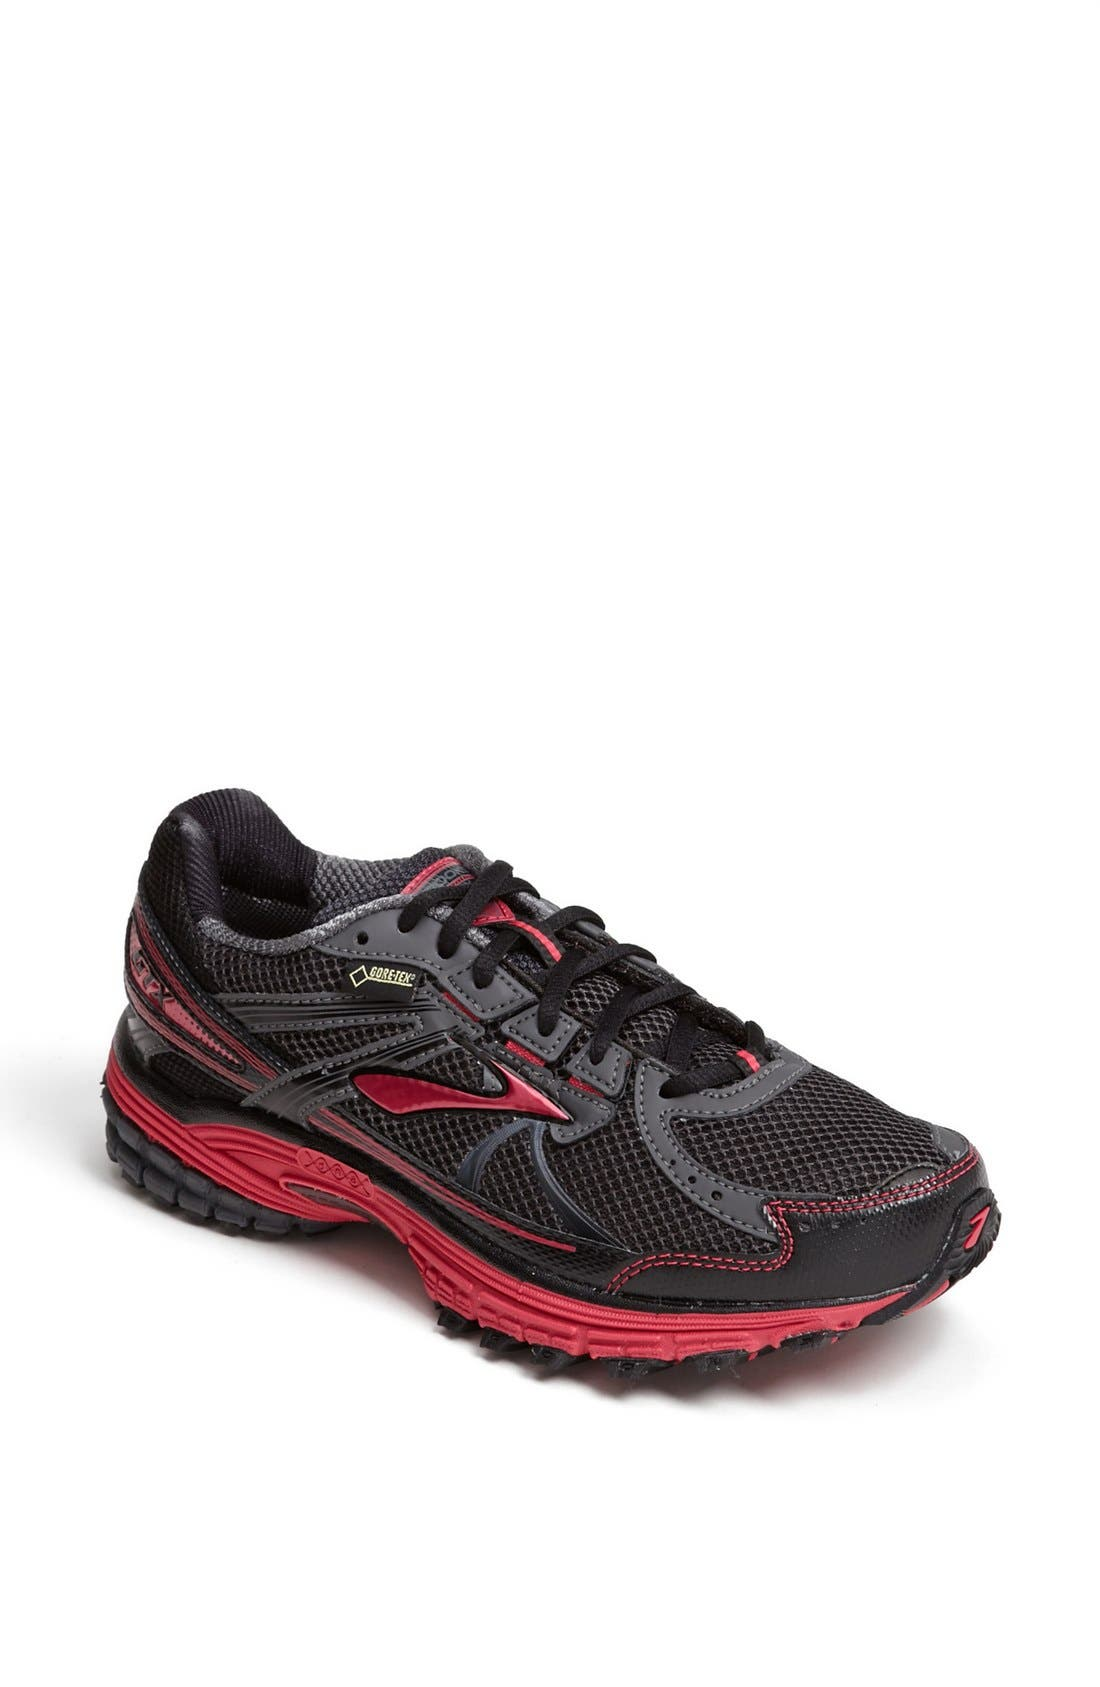 Main Image - Brooks 'Adrenaline ASR 10 GTX' Trail Running Shoe (Women)